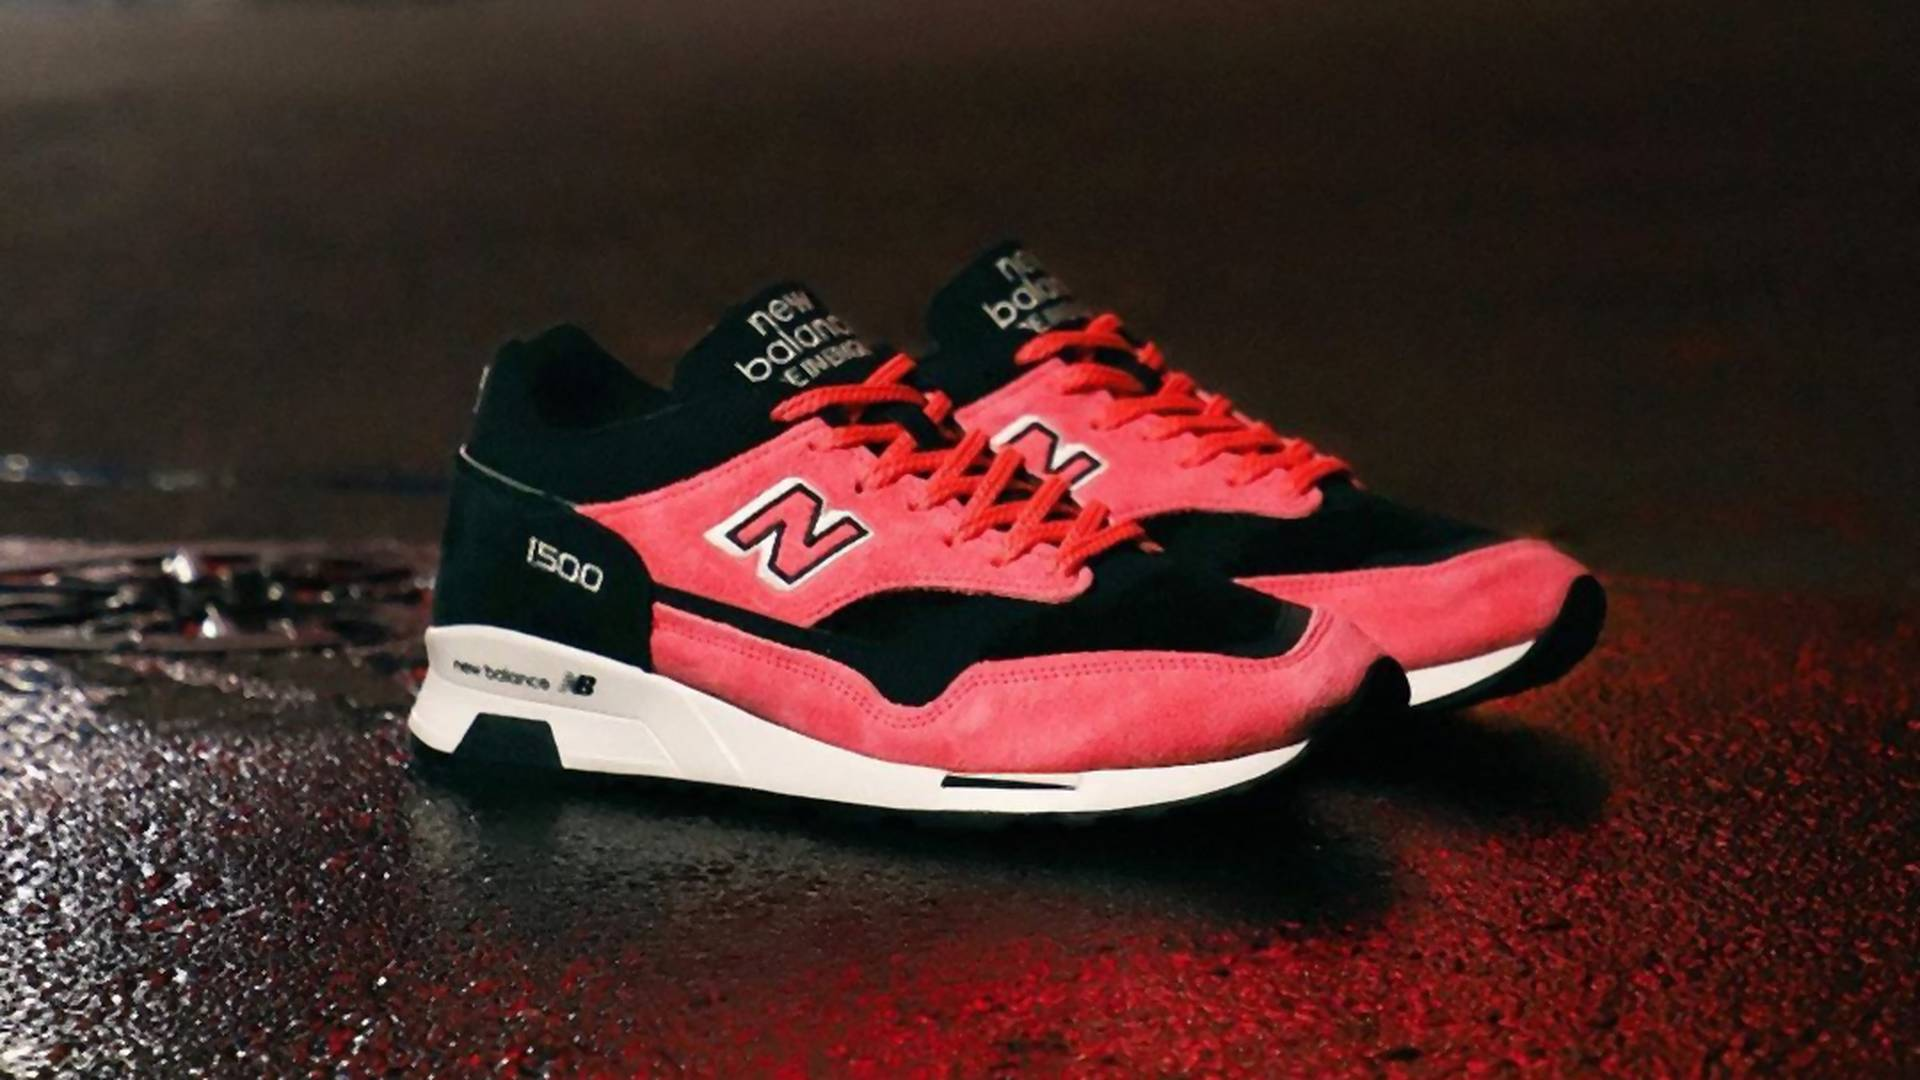 NOIZZ patika: New Balance 1500